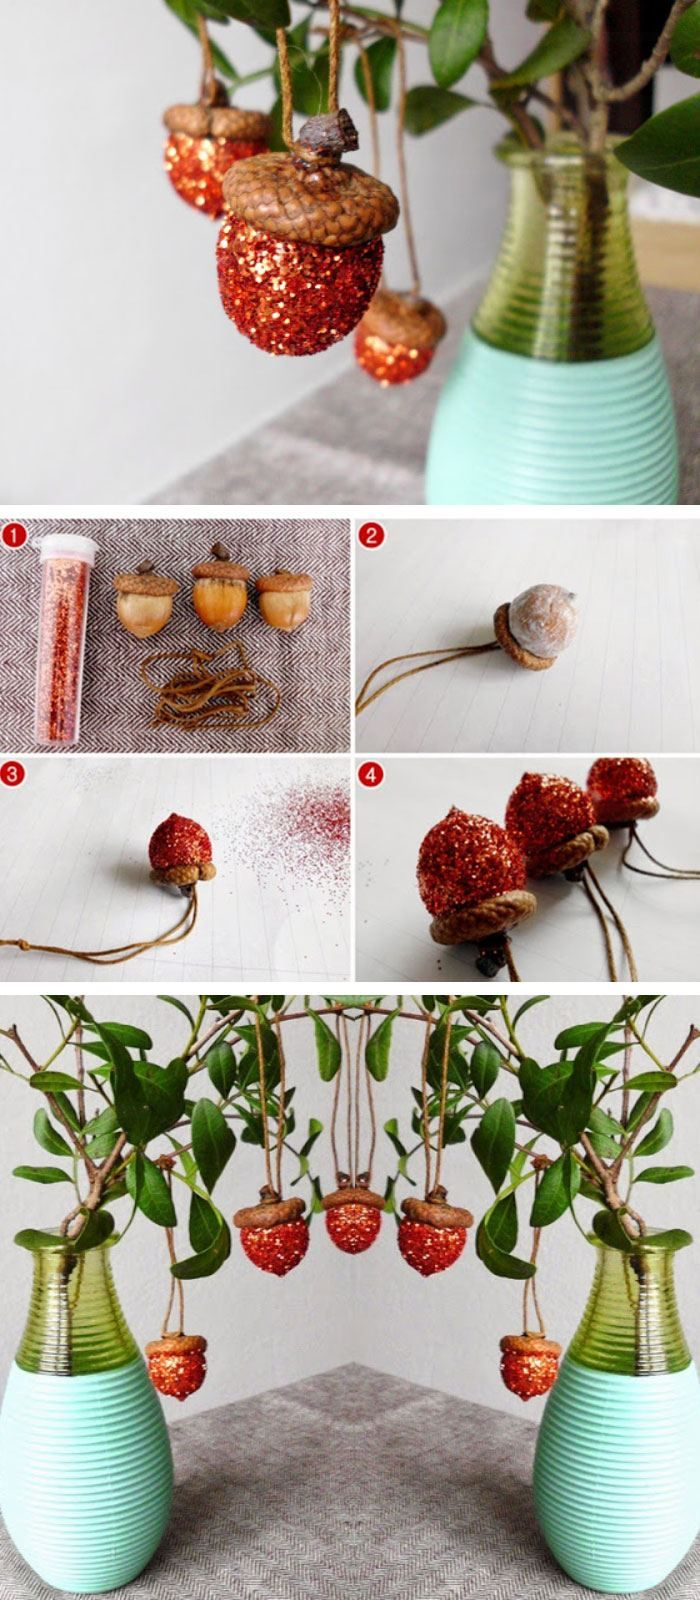 Last Minute Christmas Decorating Ideas Part - 48: Glitter Acorns | Click Pic For 22 DIY Christmas Decor Ideas On A Budget |  Last